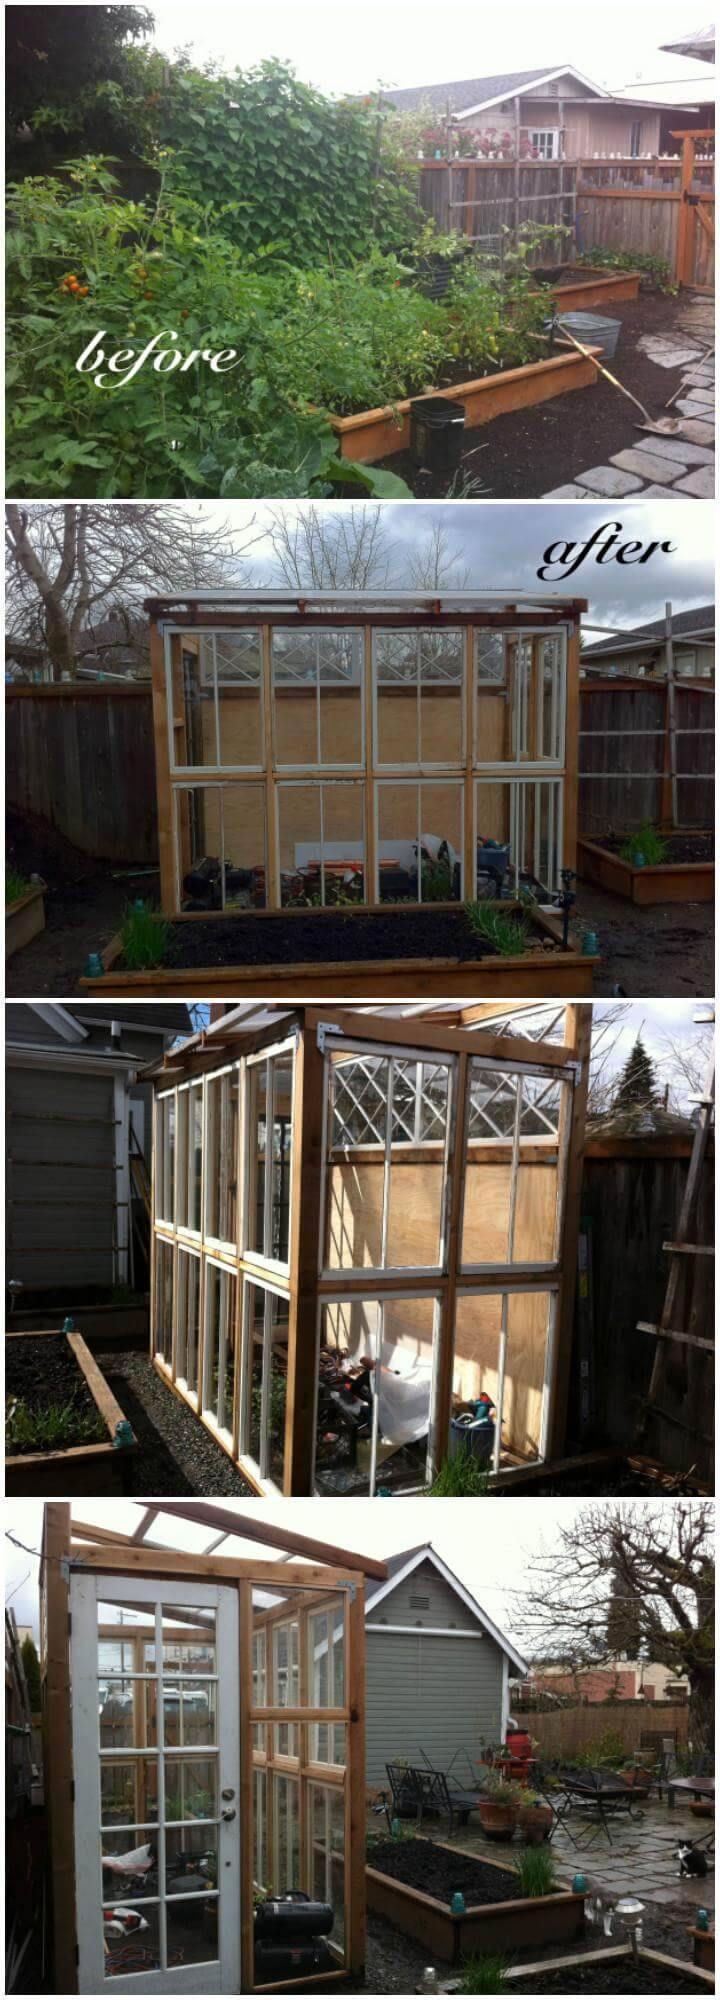 DIY Super Low-Cost Greenhouse Made from Old Windows and Doors